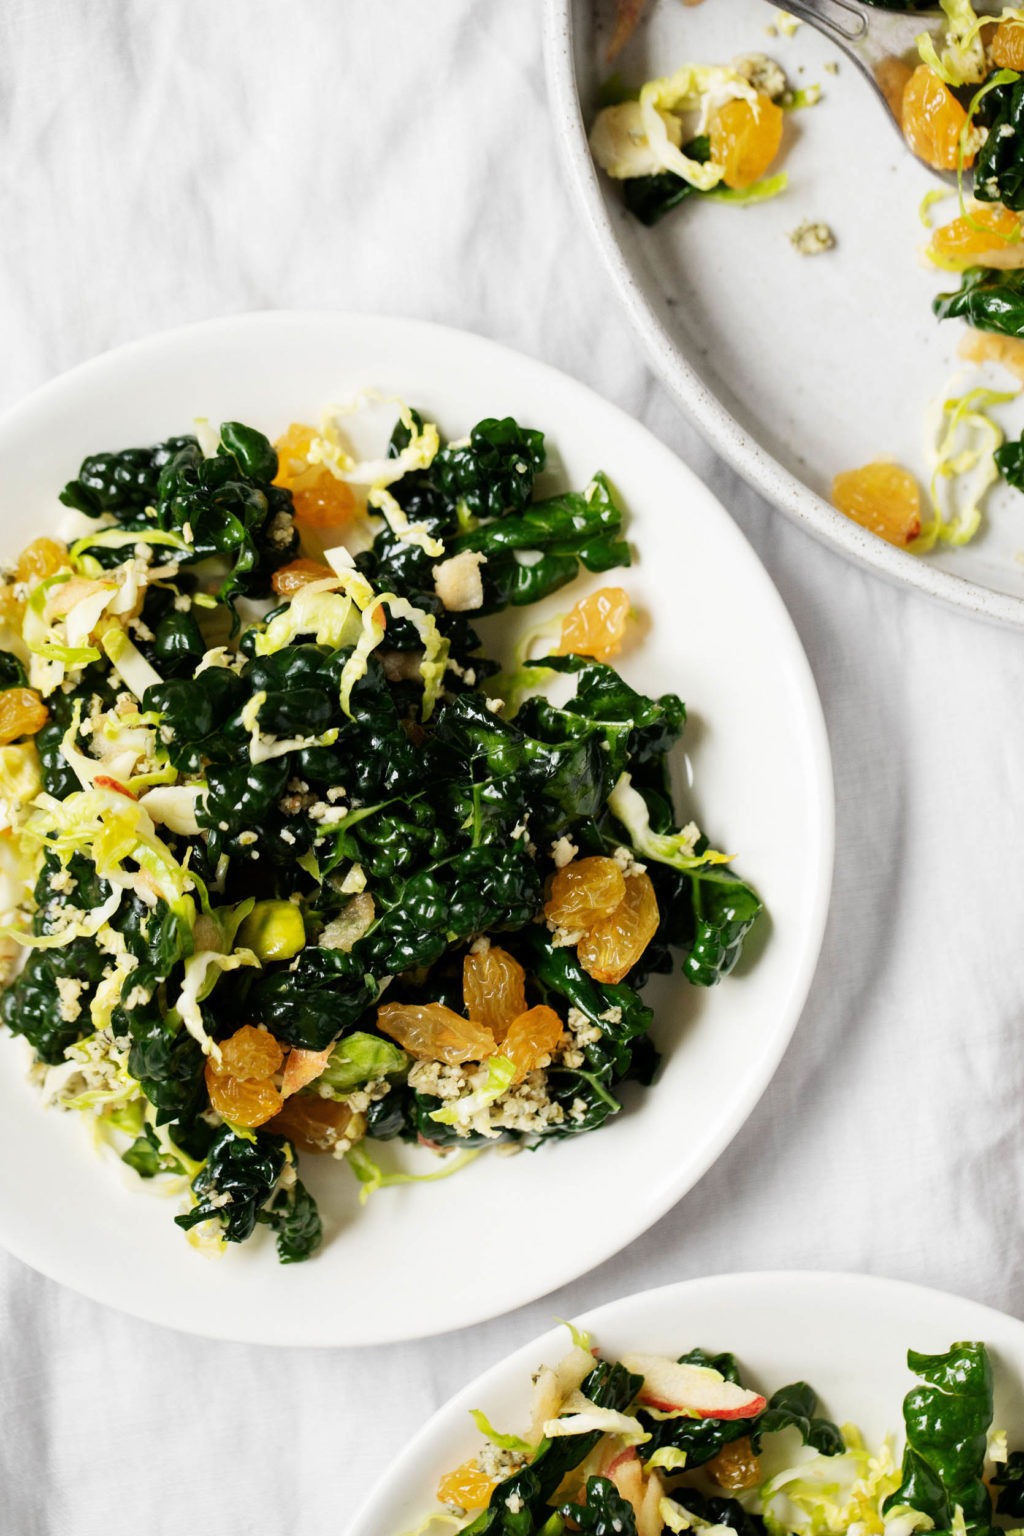 A few serving plates of a wintery vegan Brussels sprout kale salad, topped with golden raisins.